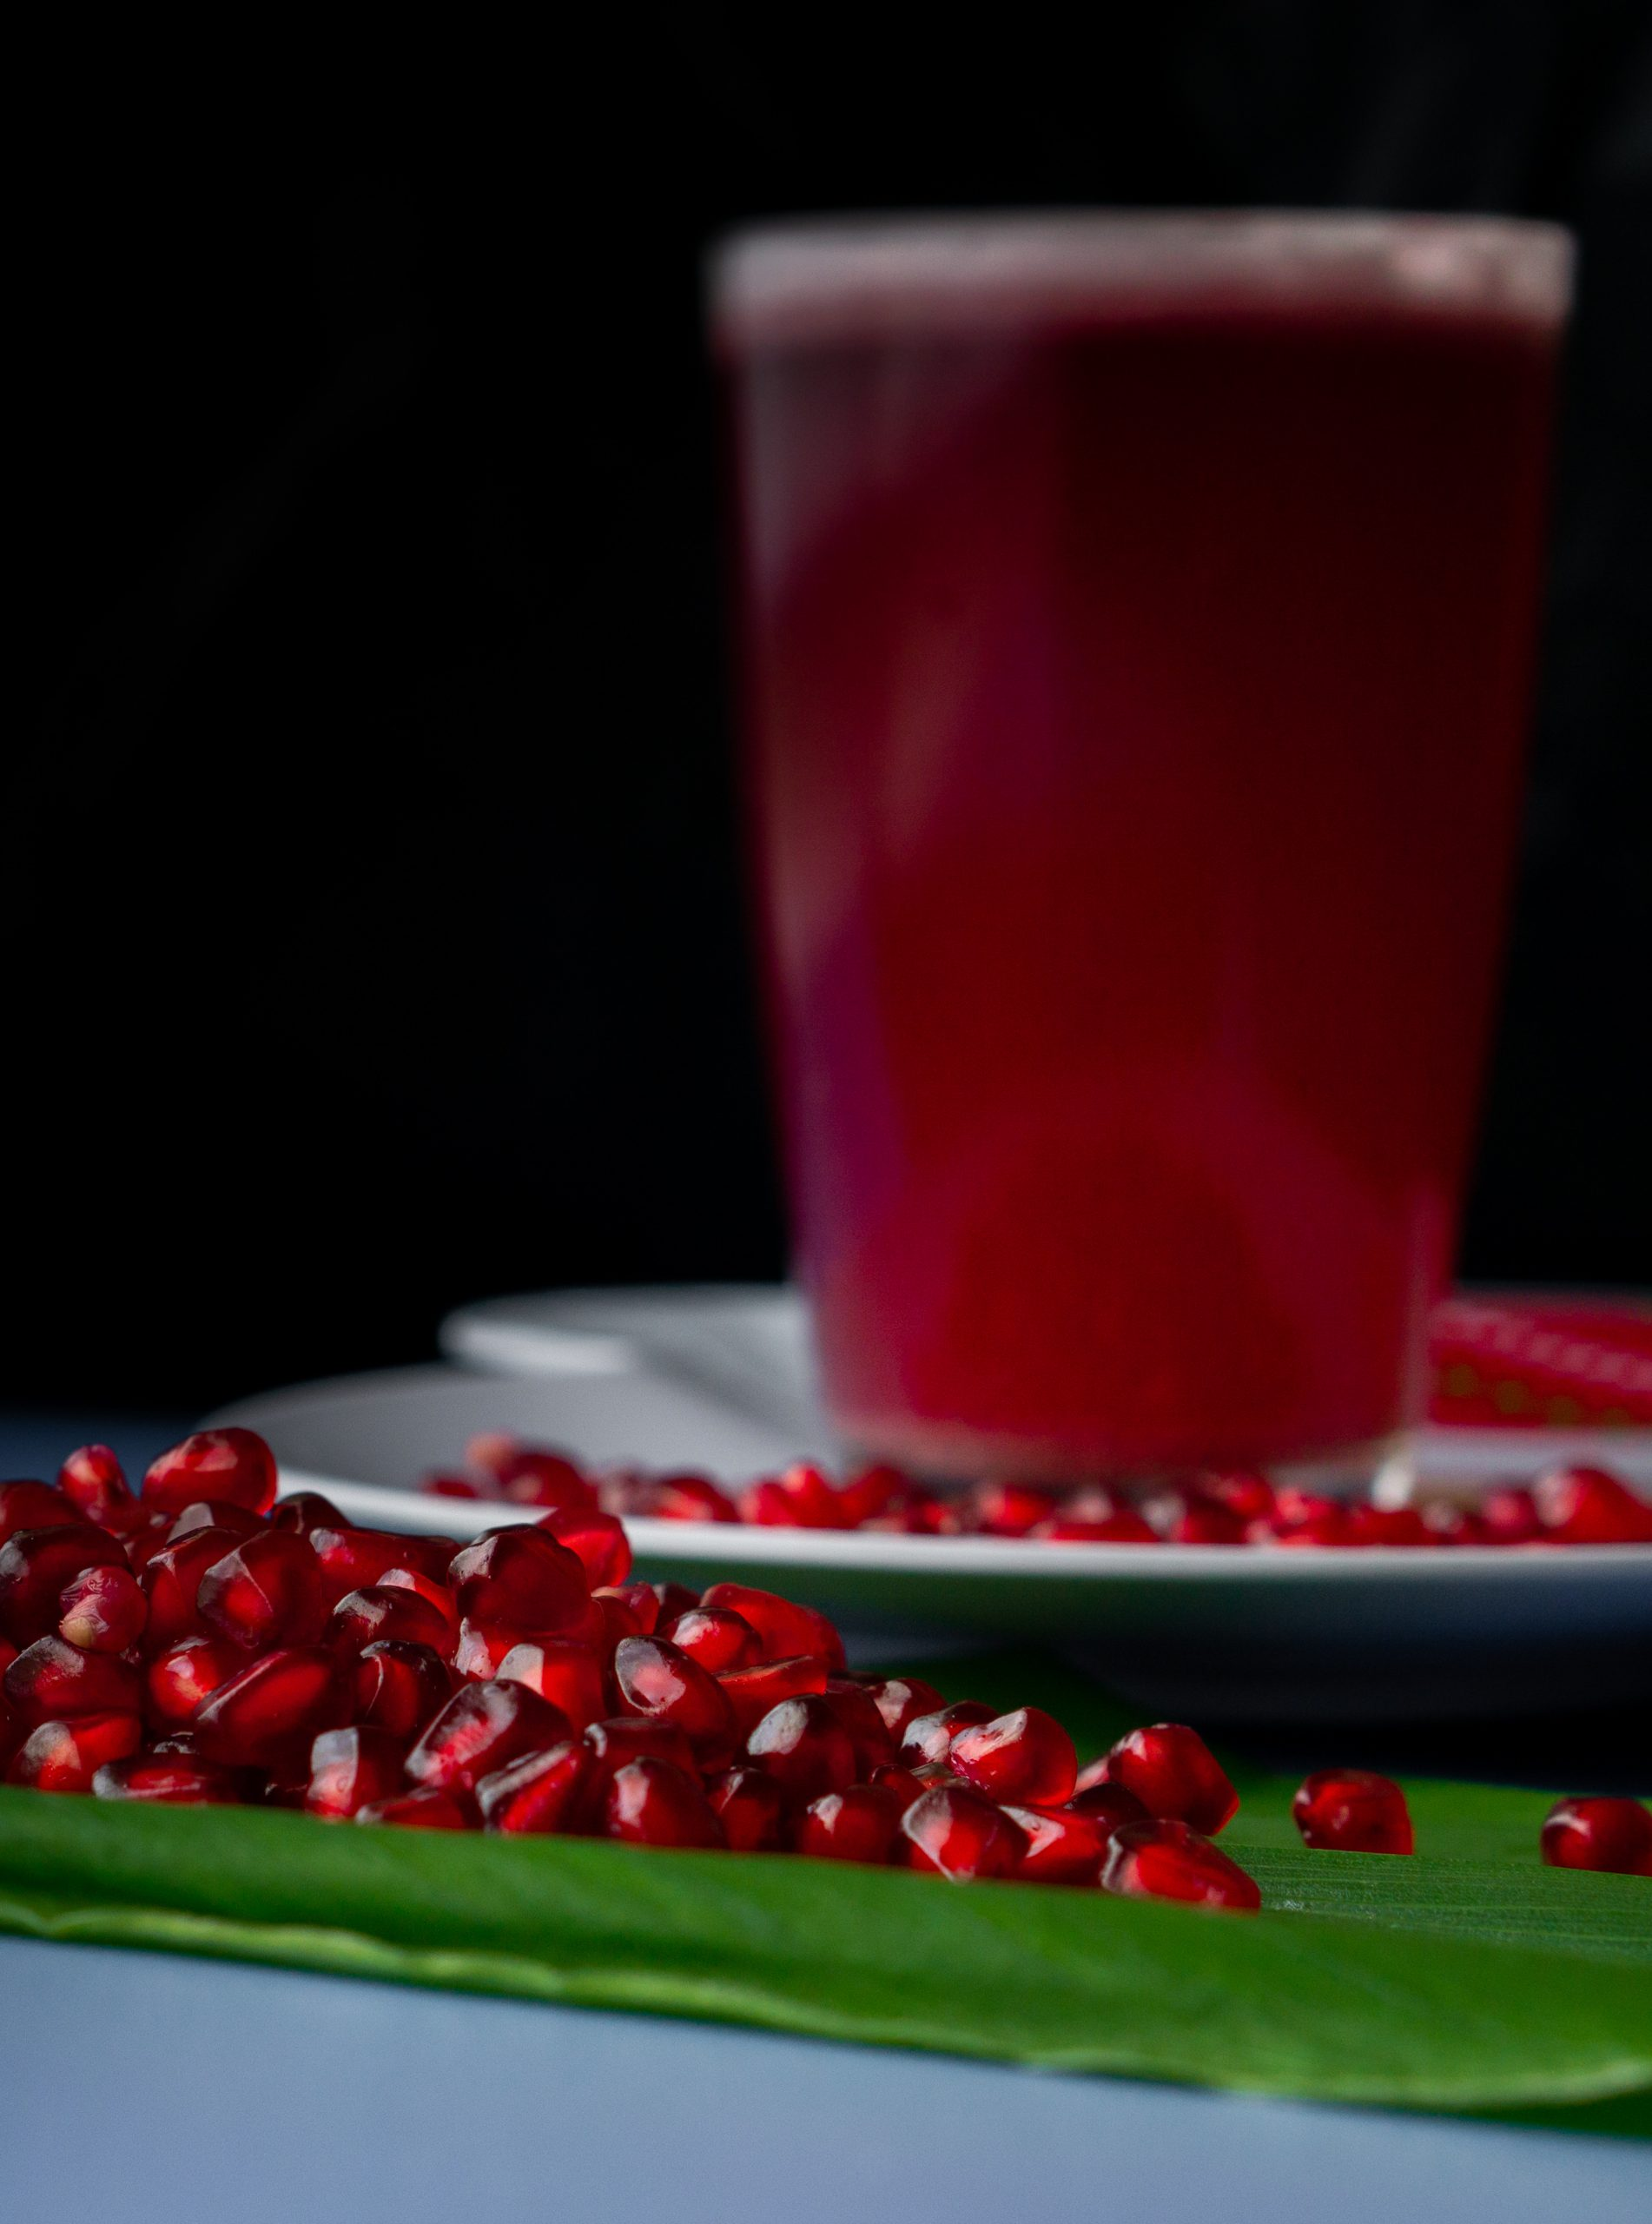 Pomegranate seeds and juice